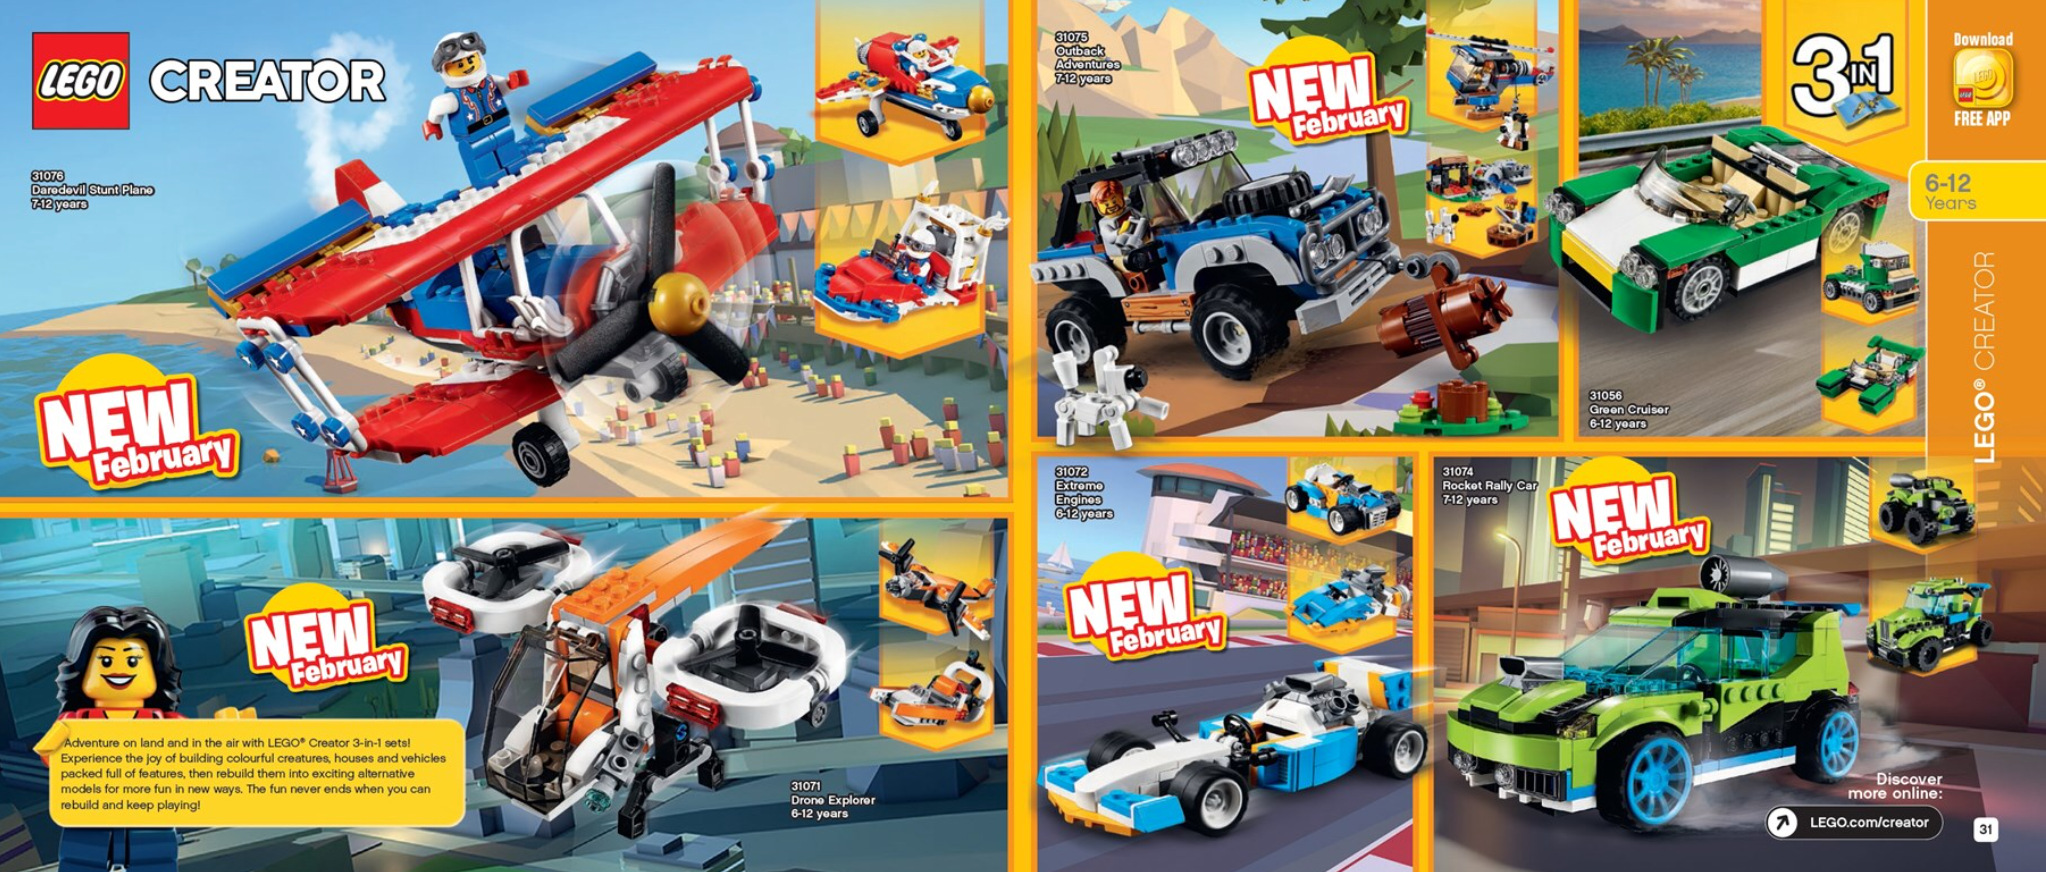 australian lego release dates first half of 2018 sets january may retailer exclusives. Black Bedroom Furniture Sets. Home Design Ideas